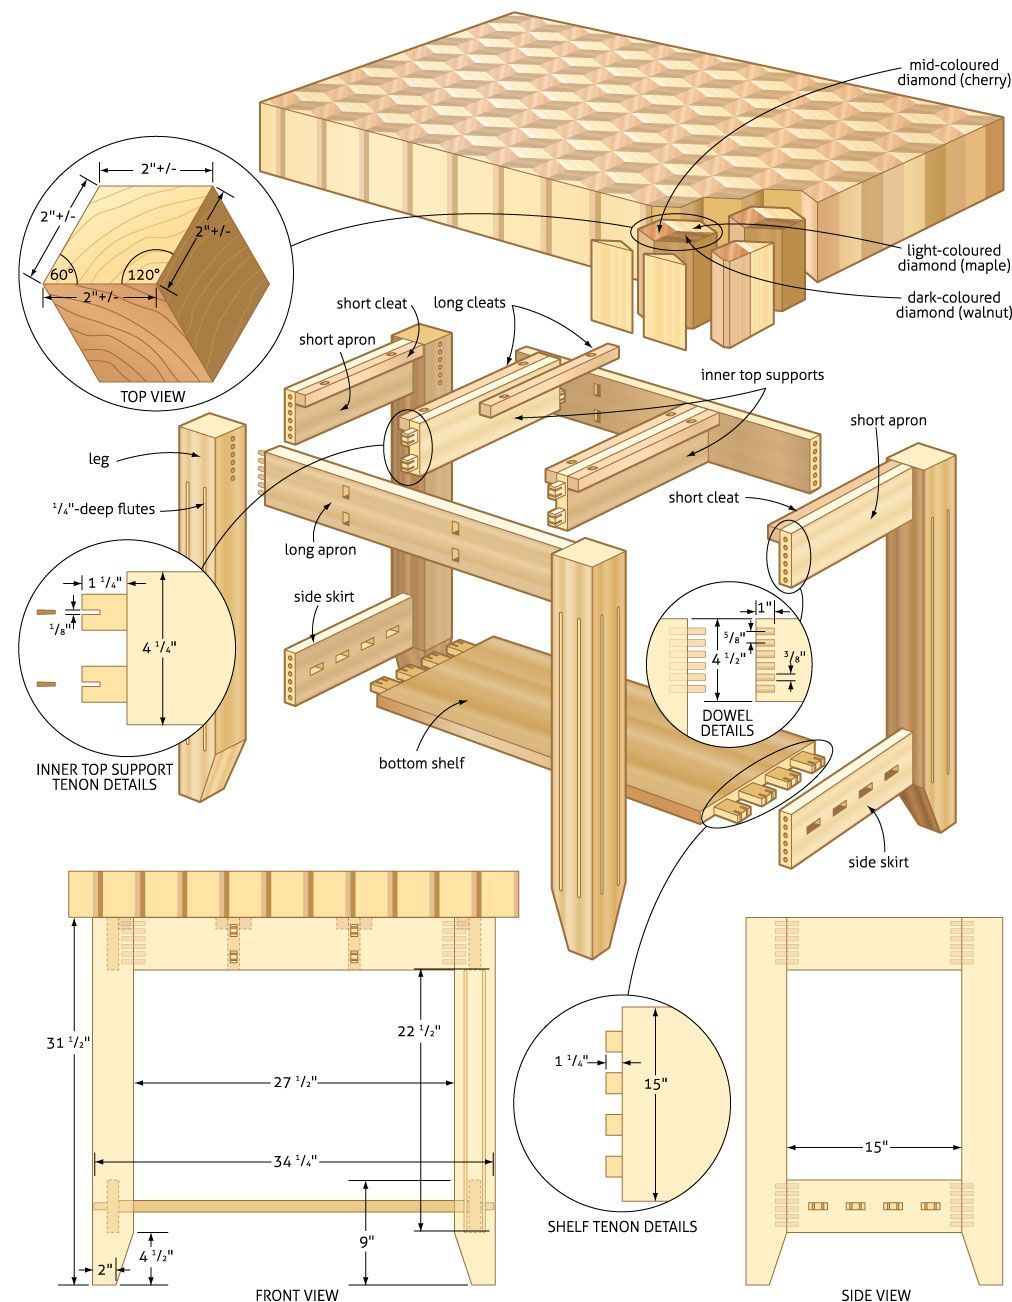 Teds Woodworking Review Teds Wood Working Offers 16 000 Plans Woodworking Furniture In 2020 Woodworking Plans Beginner Woodworking Projects Plans Woodworking Plans